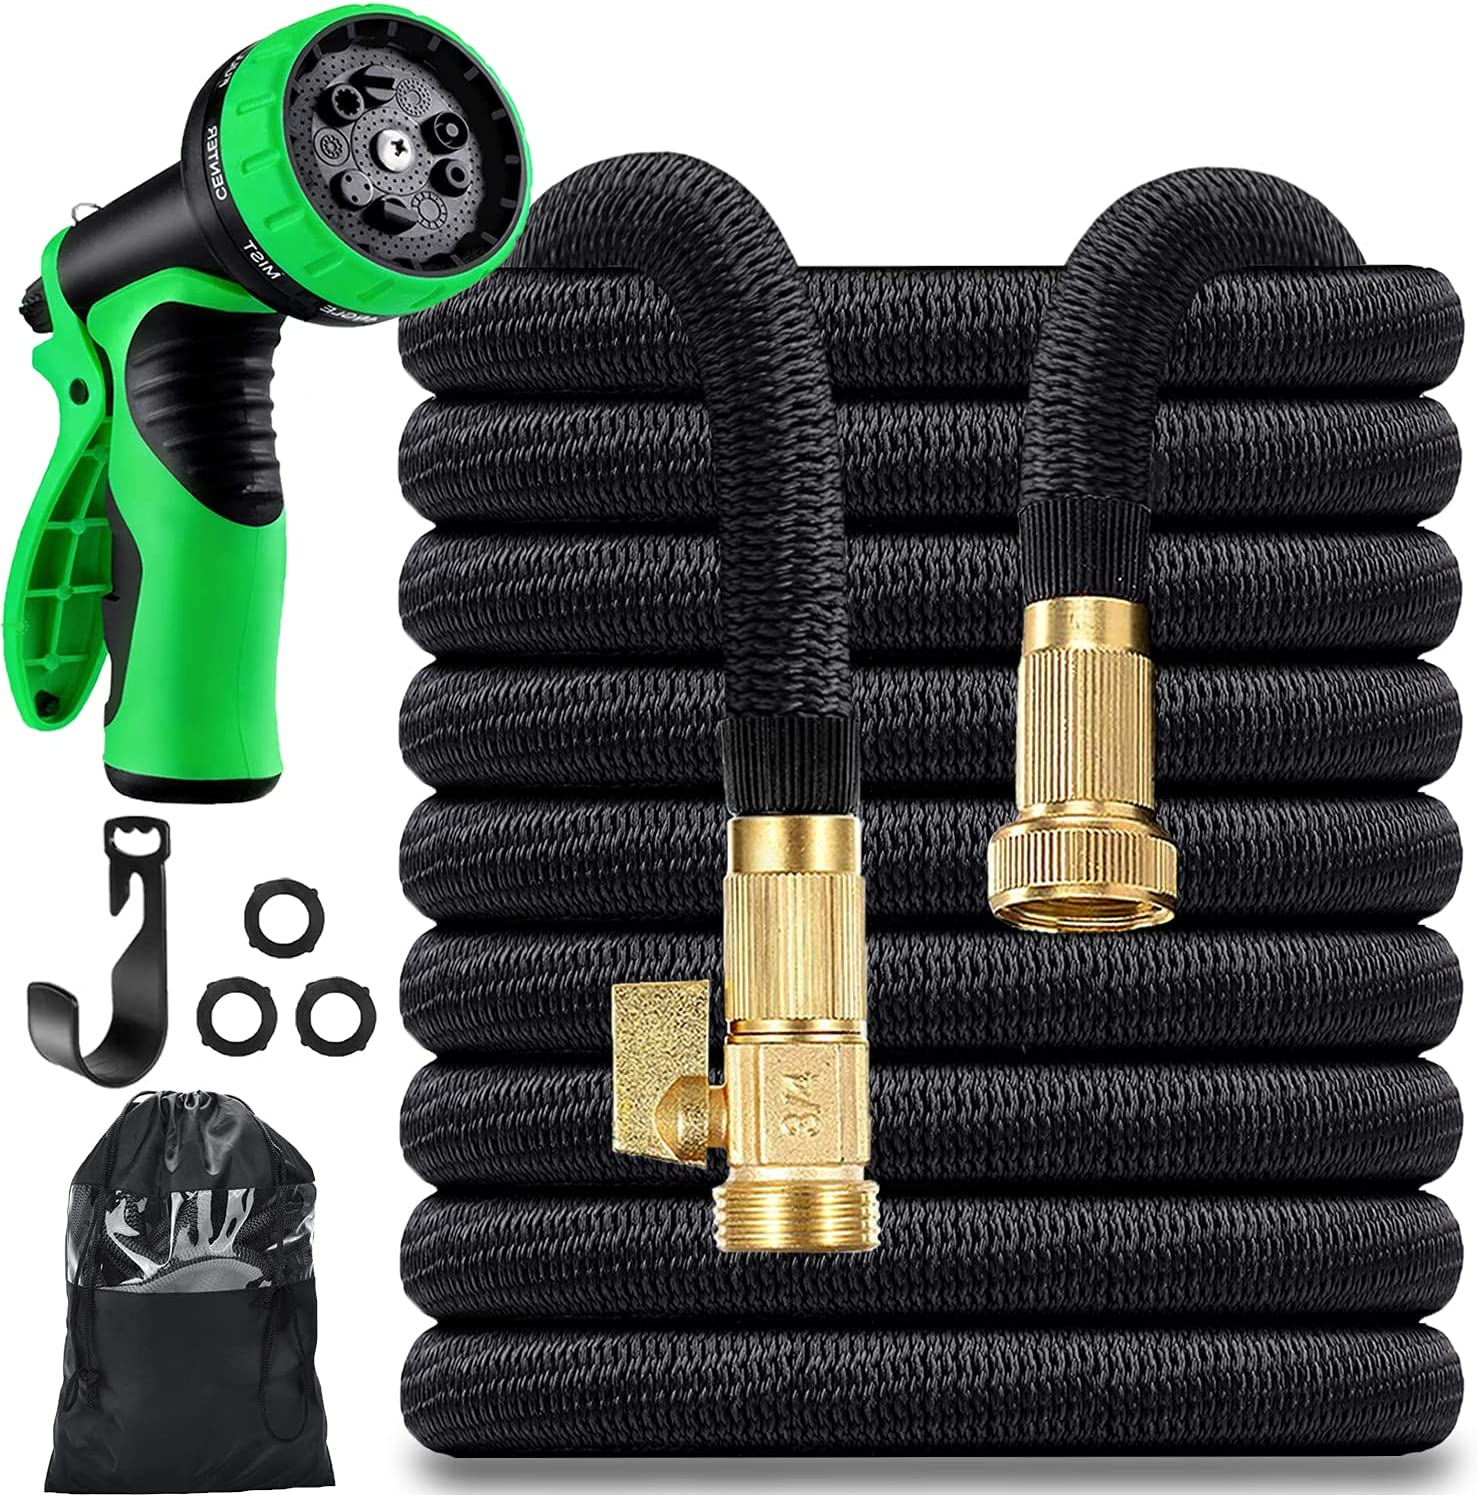 150 ft Garden Hose - Expandable Water Hose wiht Durable 4-Layer Latex Core and Fabric, 3/4